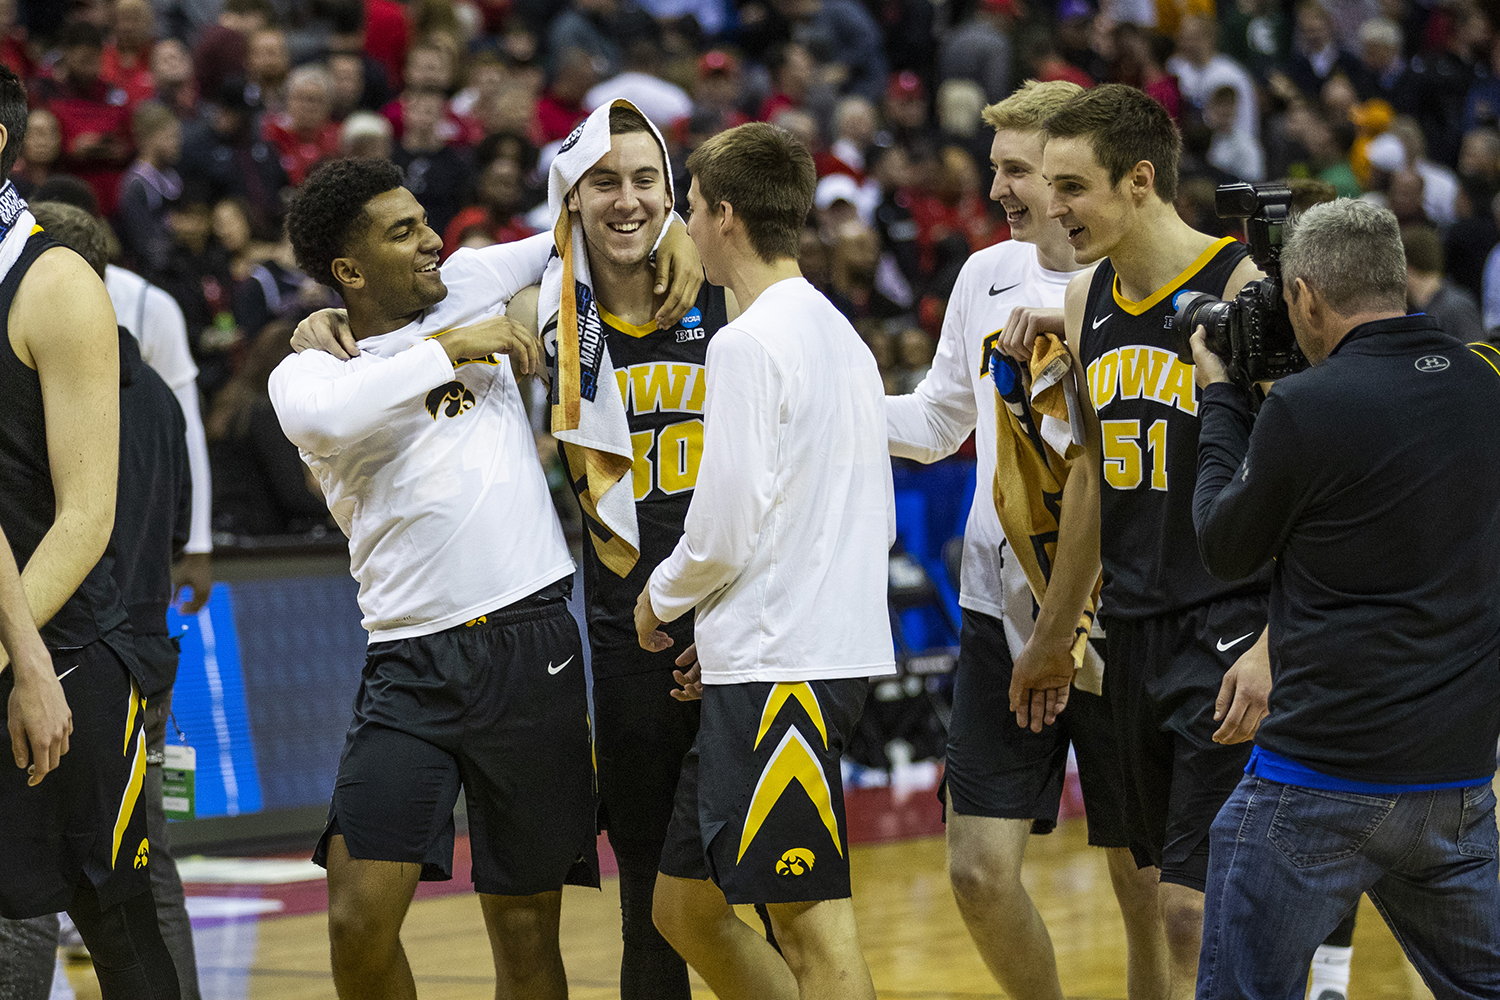 Iowa guard Connor McCaffery celebrates the win with his teammates during the NCAA game against Cincinnati at Nationwide Arena on Friday March 22, 2019. The Hawkeyes defeated the Bearcats 79-72. (Katina Zentz/The Daily Iowan)